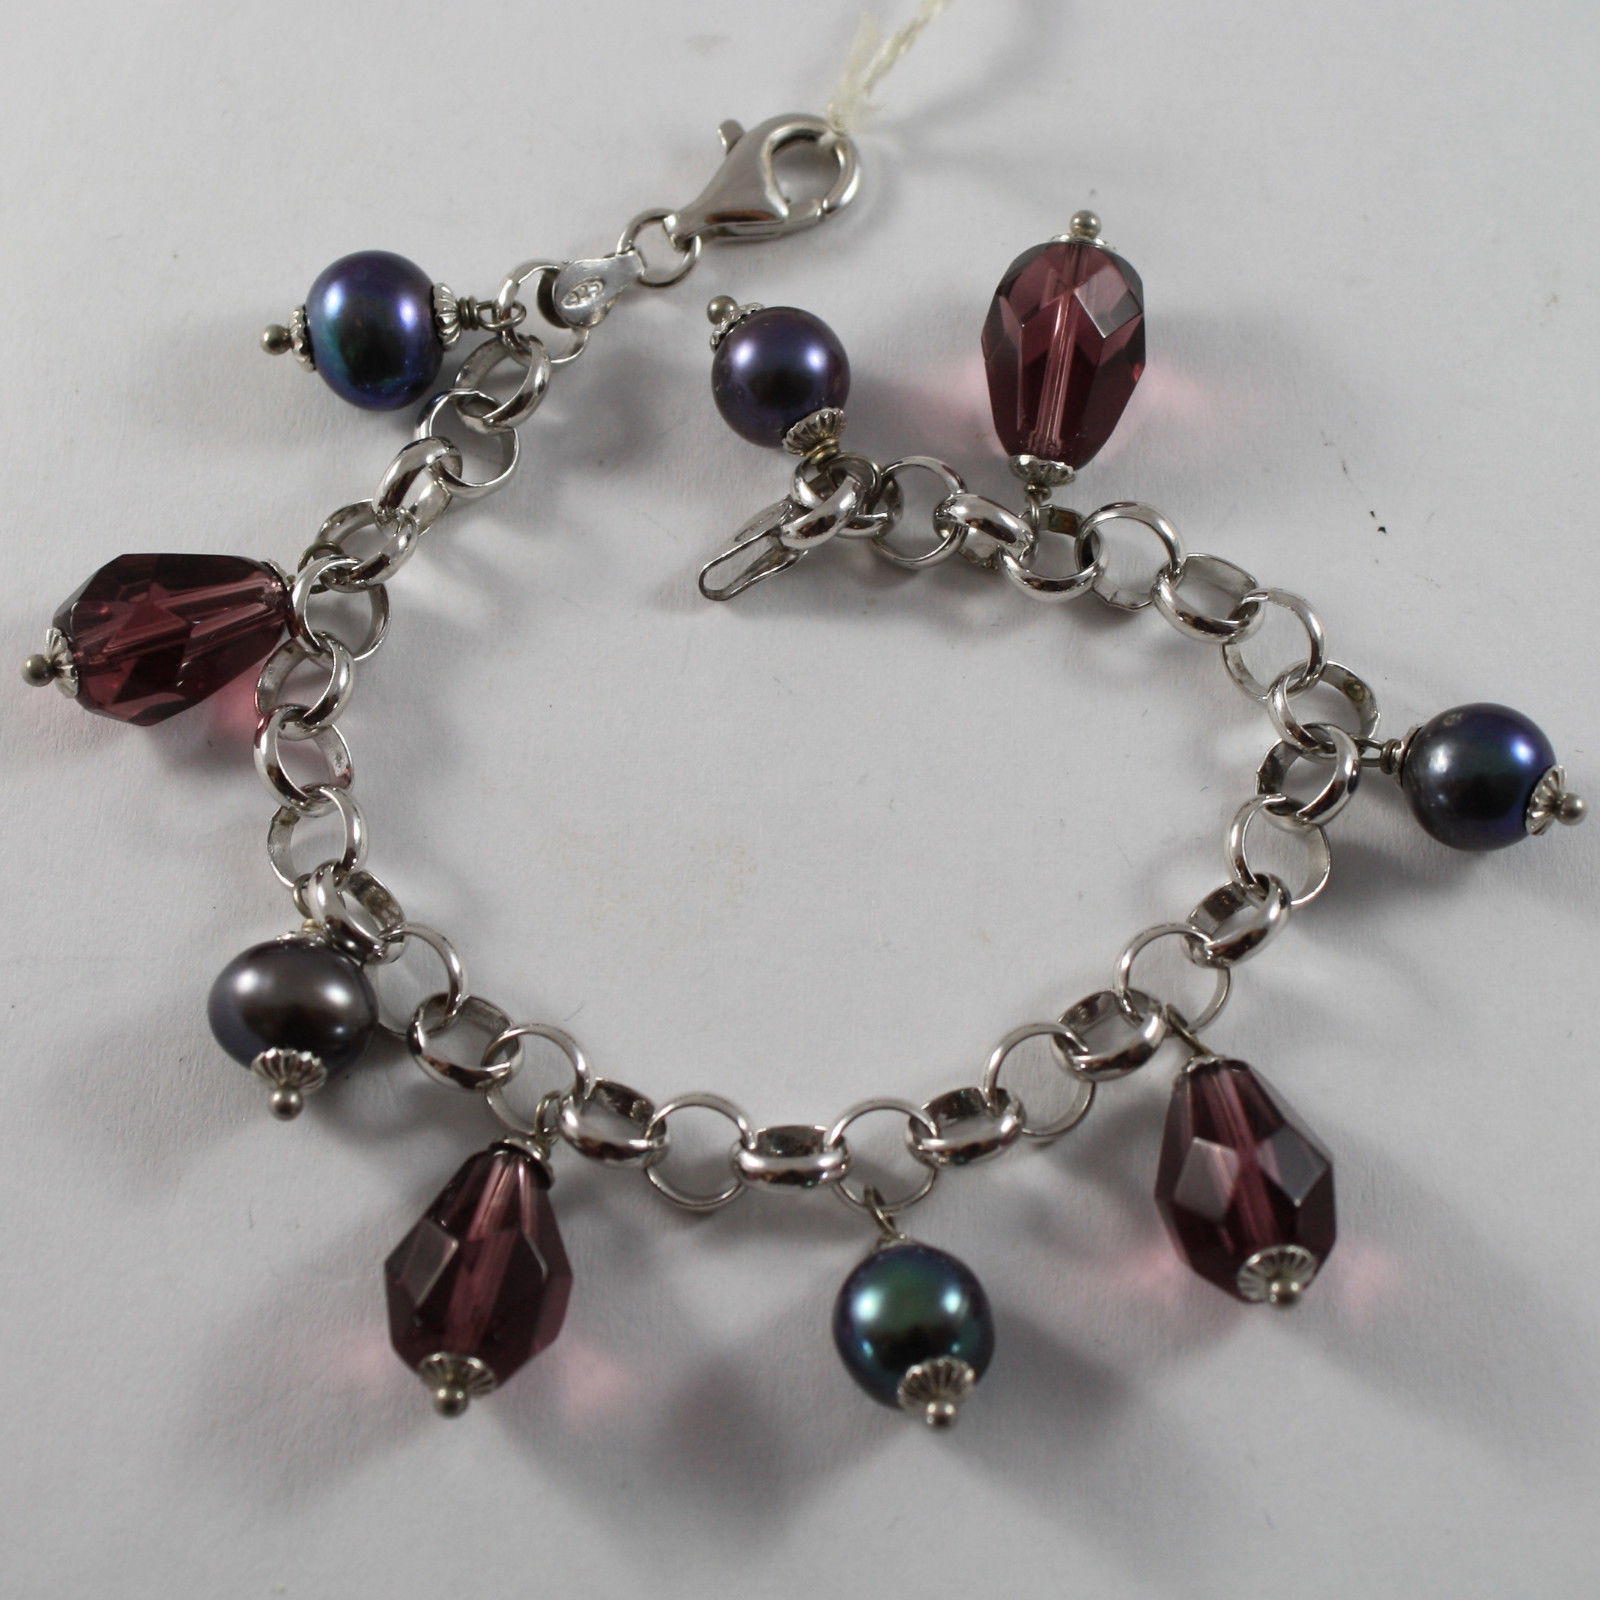 .925 RHODIUM SILVER BRACELET WITH DROPS OF PURPLE CRISTAL AND GRAY PEARLS